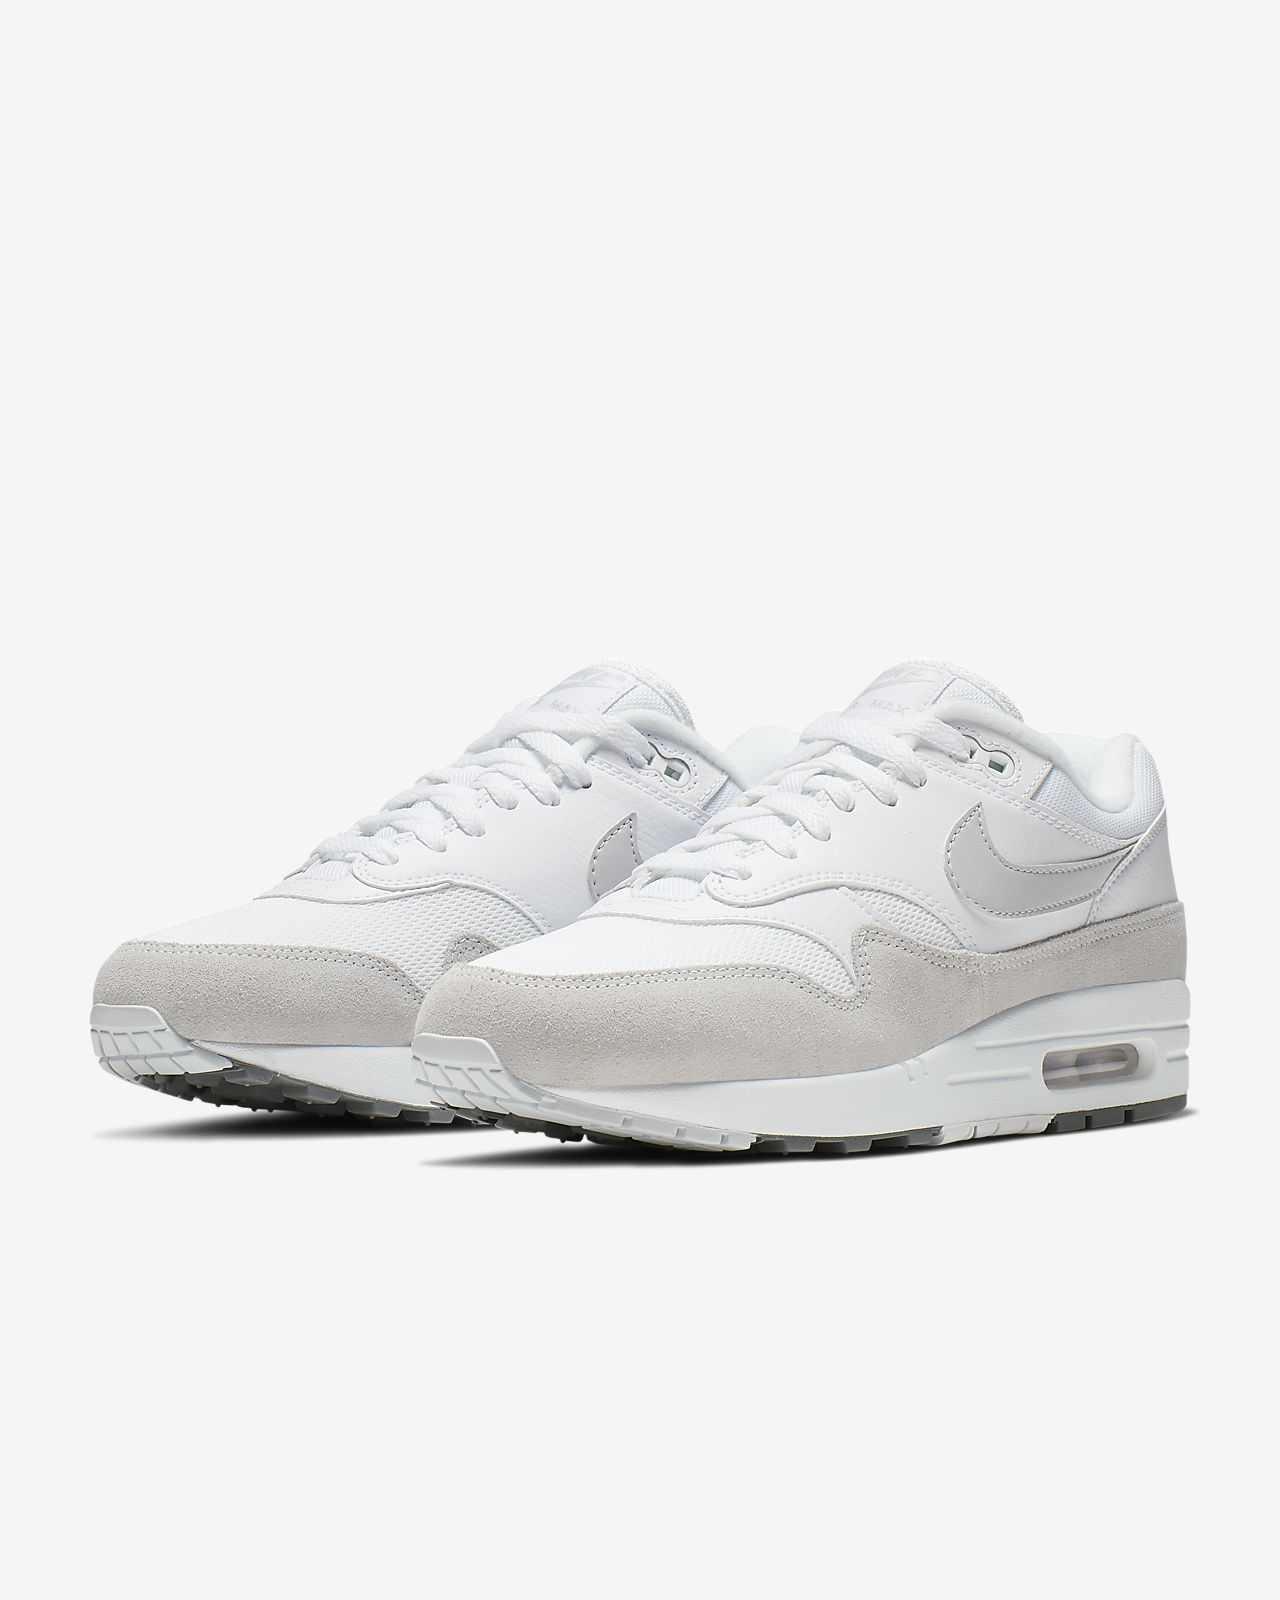 6466f668e6 Nike Air Max 1 Men's Shoe. Nike.com